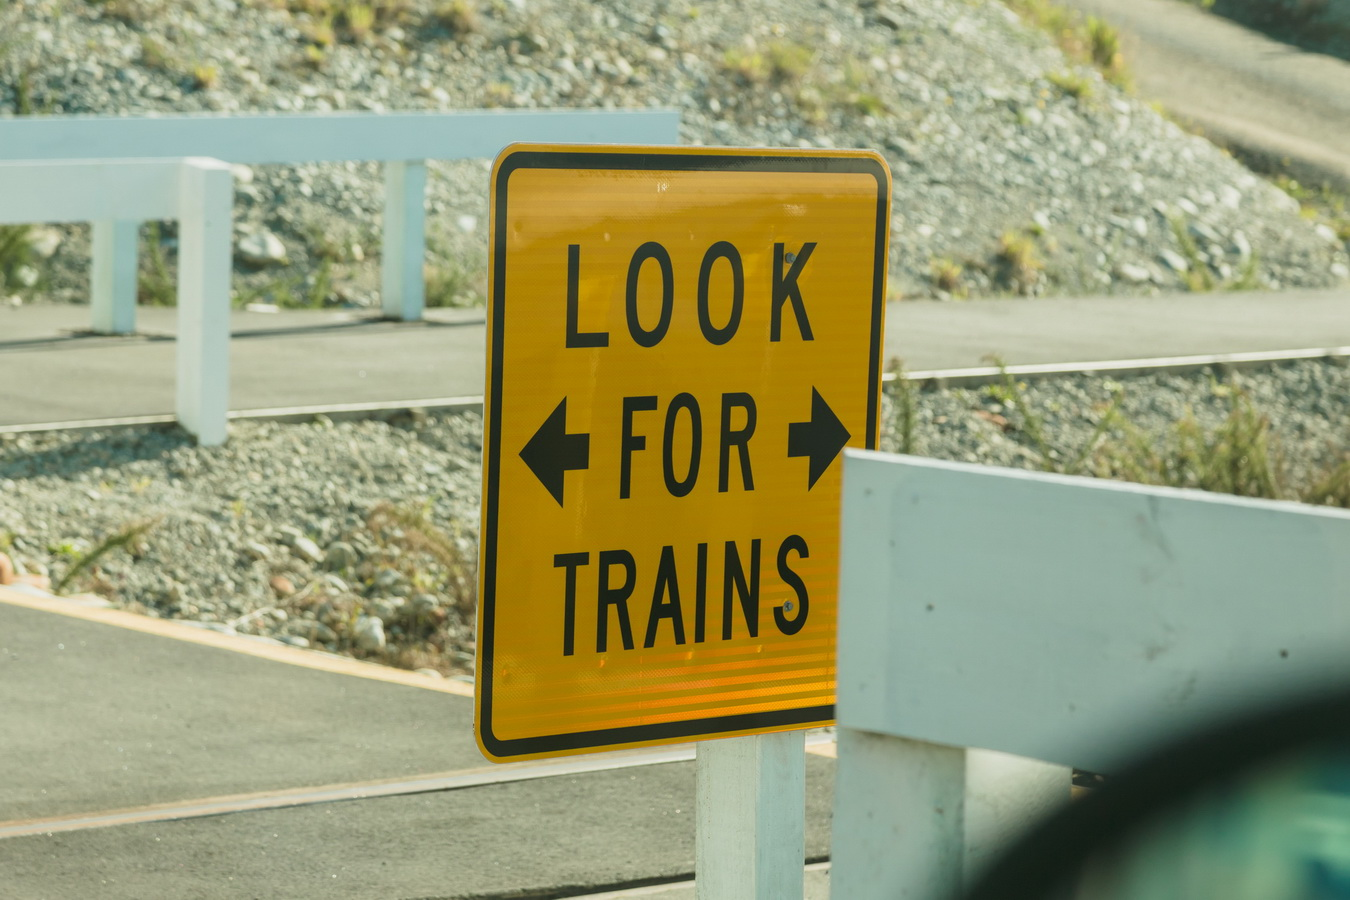 look for trains,trains on the road, road, car, road sign, new Zealand